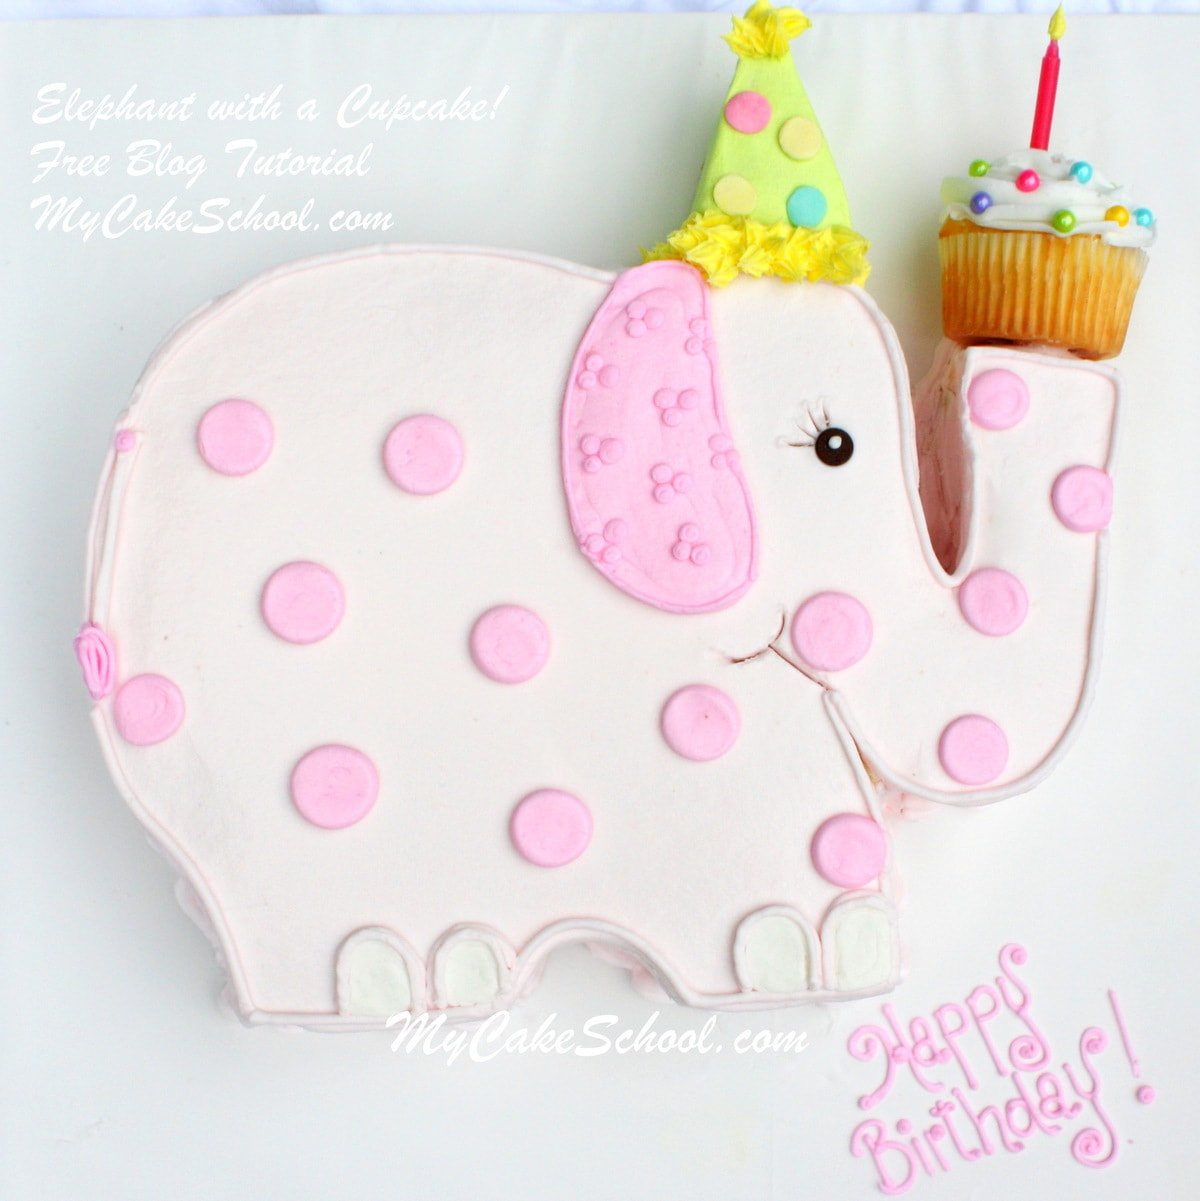 Thanks For Stopping By And If You Make A Sweet Elephant Cake Of Your